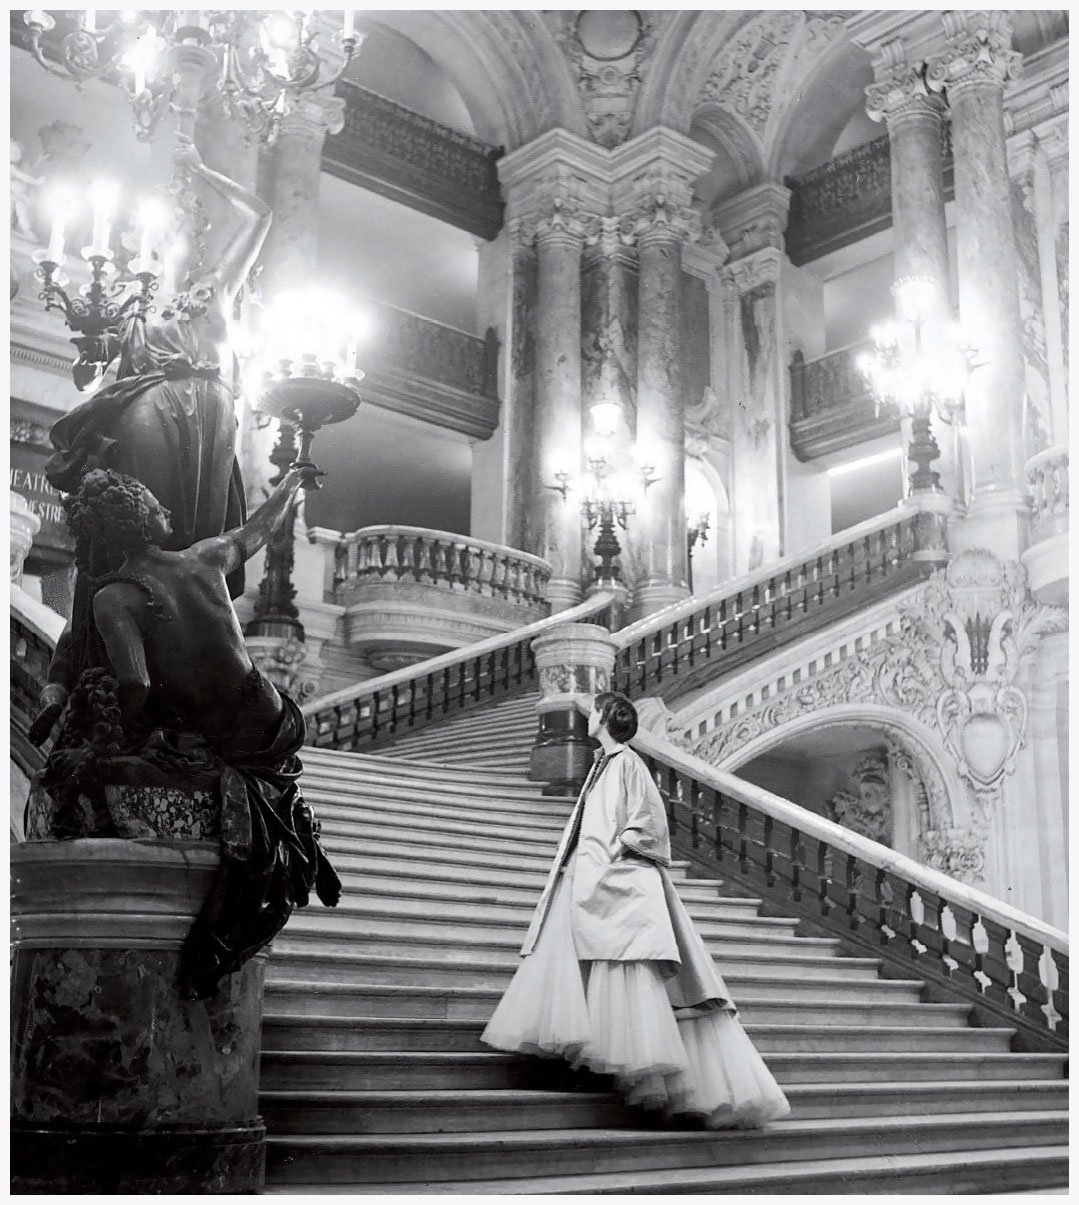 diors-tulle-ballgown-on-the-grand-staircase-at-the-paris-opera-photo-clifford-coffin-1948